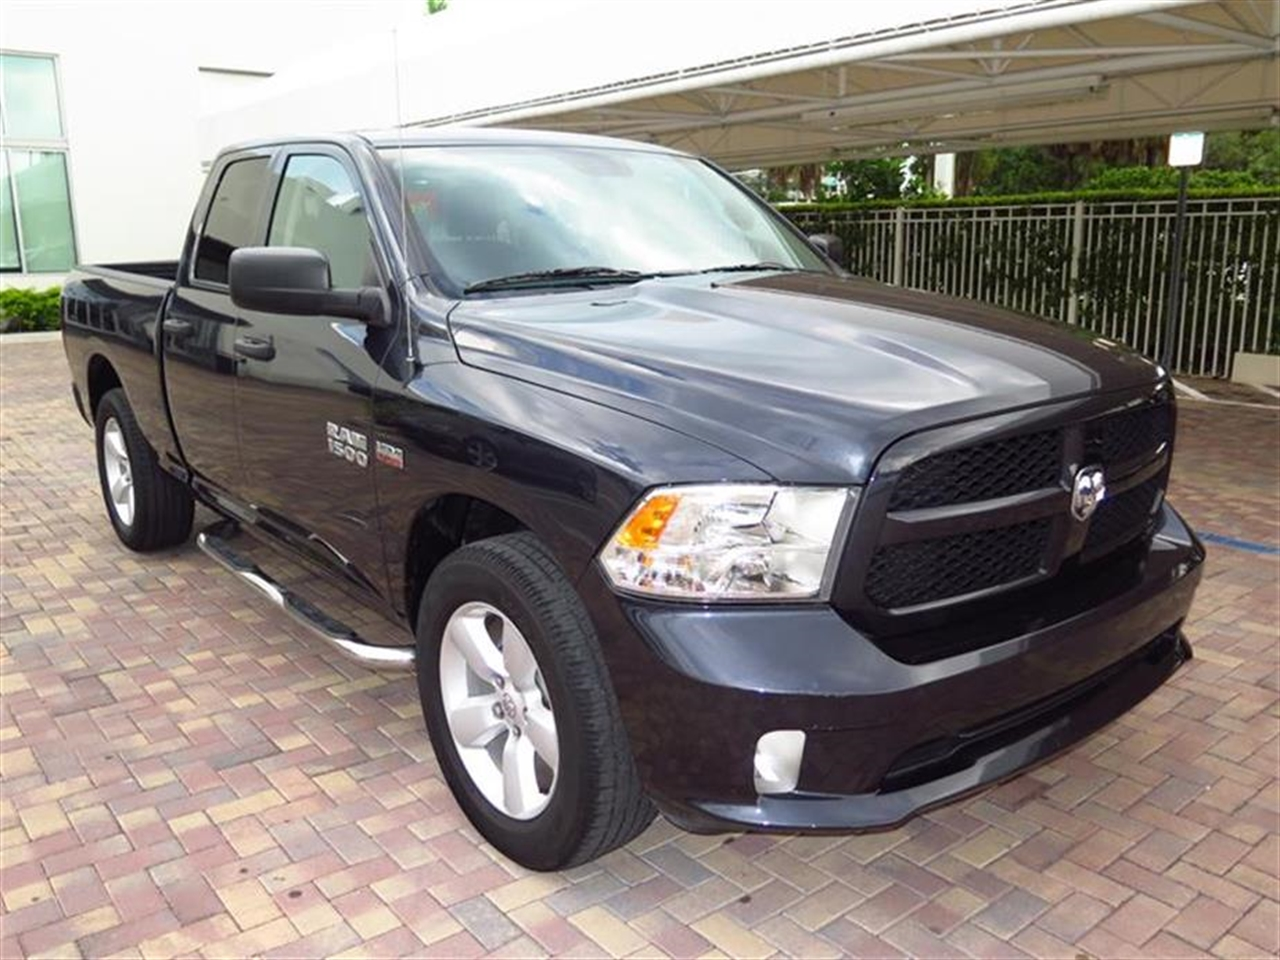 2014 RAM RAM 4WD Quad Cab Tradesman 25317 miles 2 12V DC Power Outlets 402040 Split Bench Seat